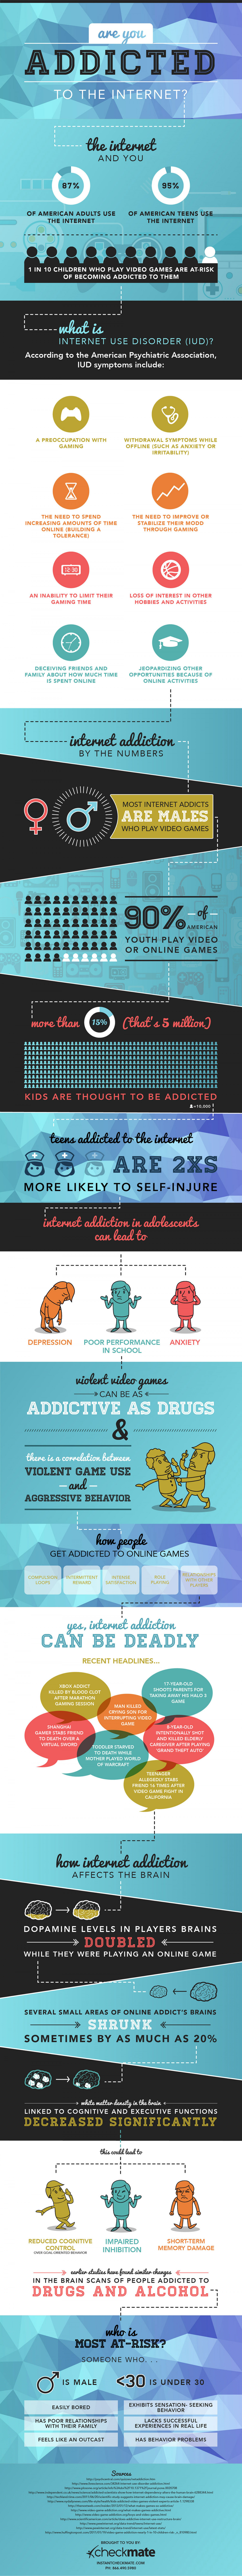 Are YOU Addicted To The Internet? Infographic